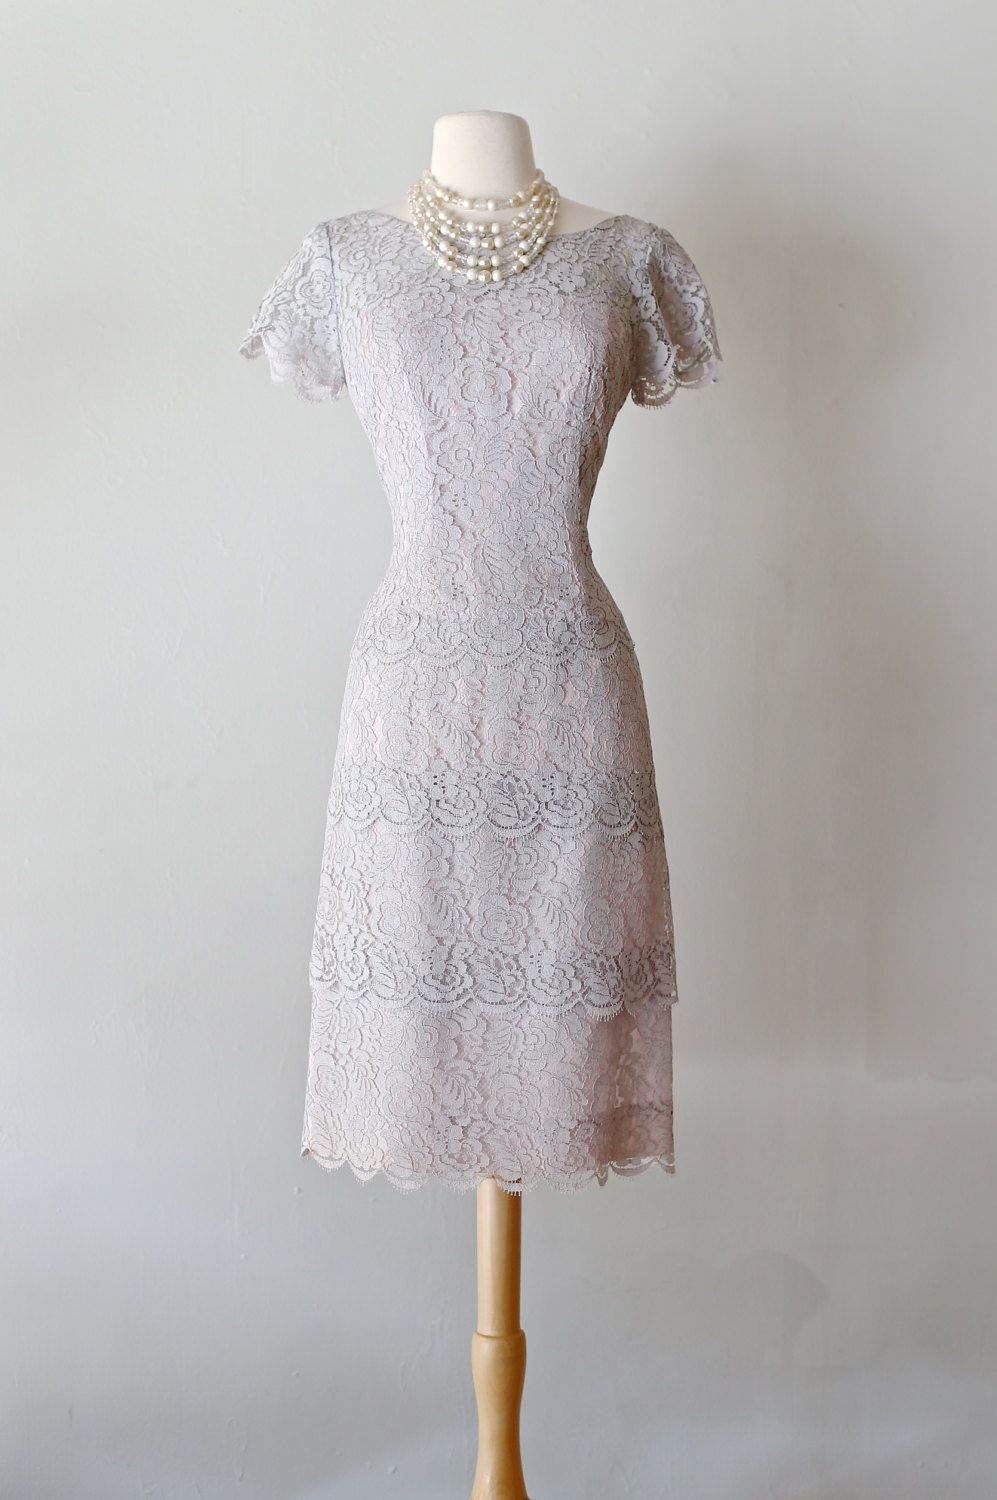 8924acb874f Vintage 1950s Grey Lace Cocktail Dress ~ Vintage 50s Tiered Lace Party Dress  by xtabayvintage on Etsy